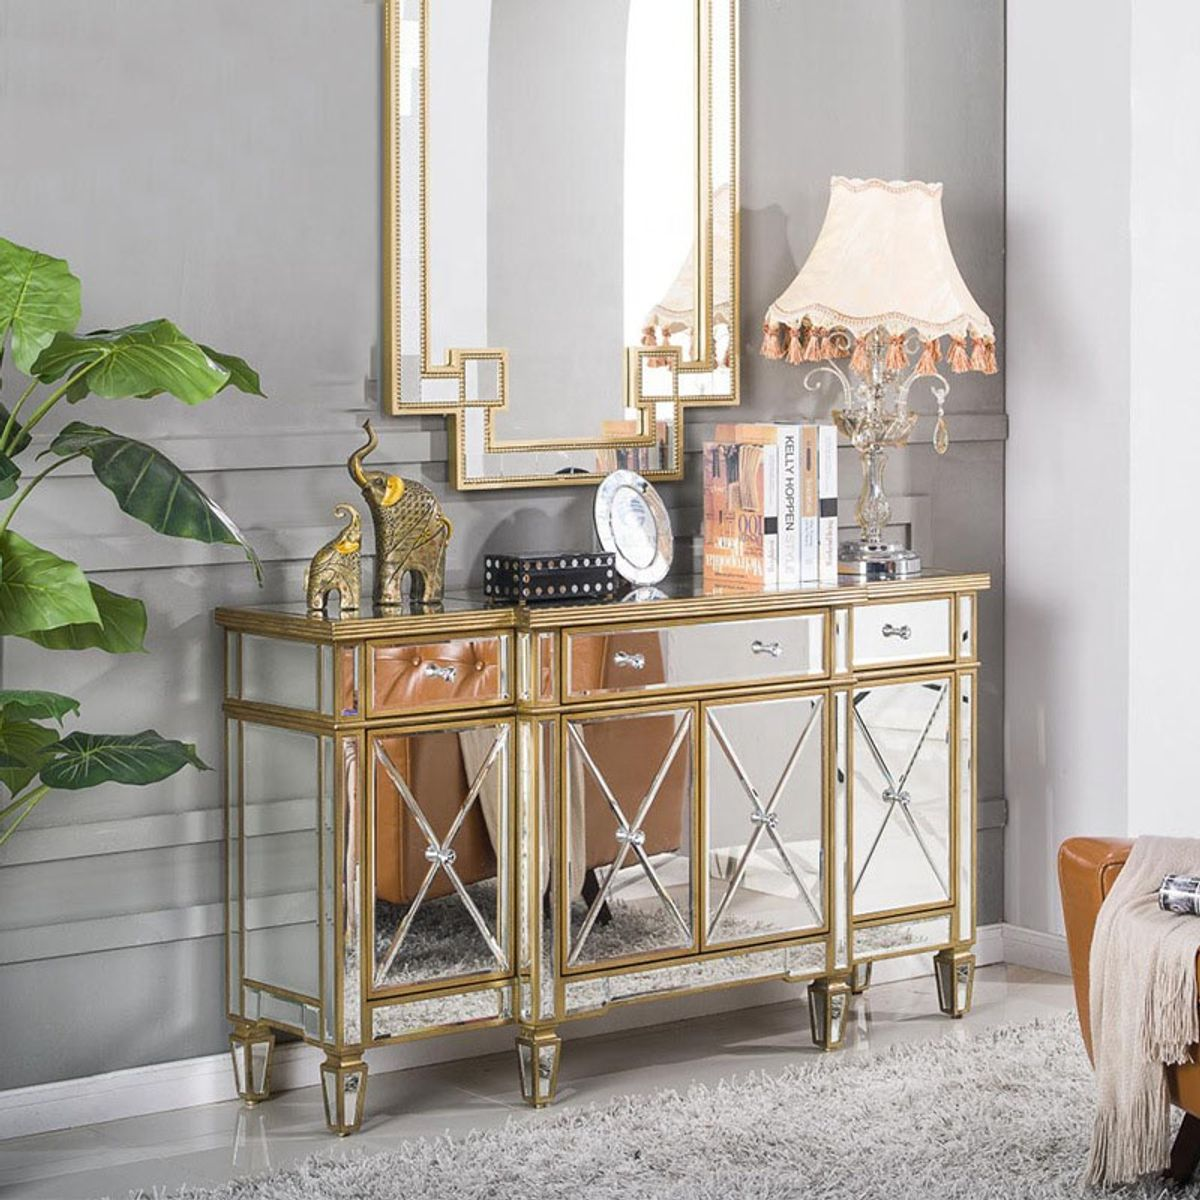 LUXURY CONSOLE TABLE